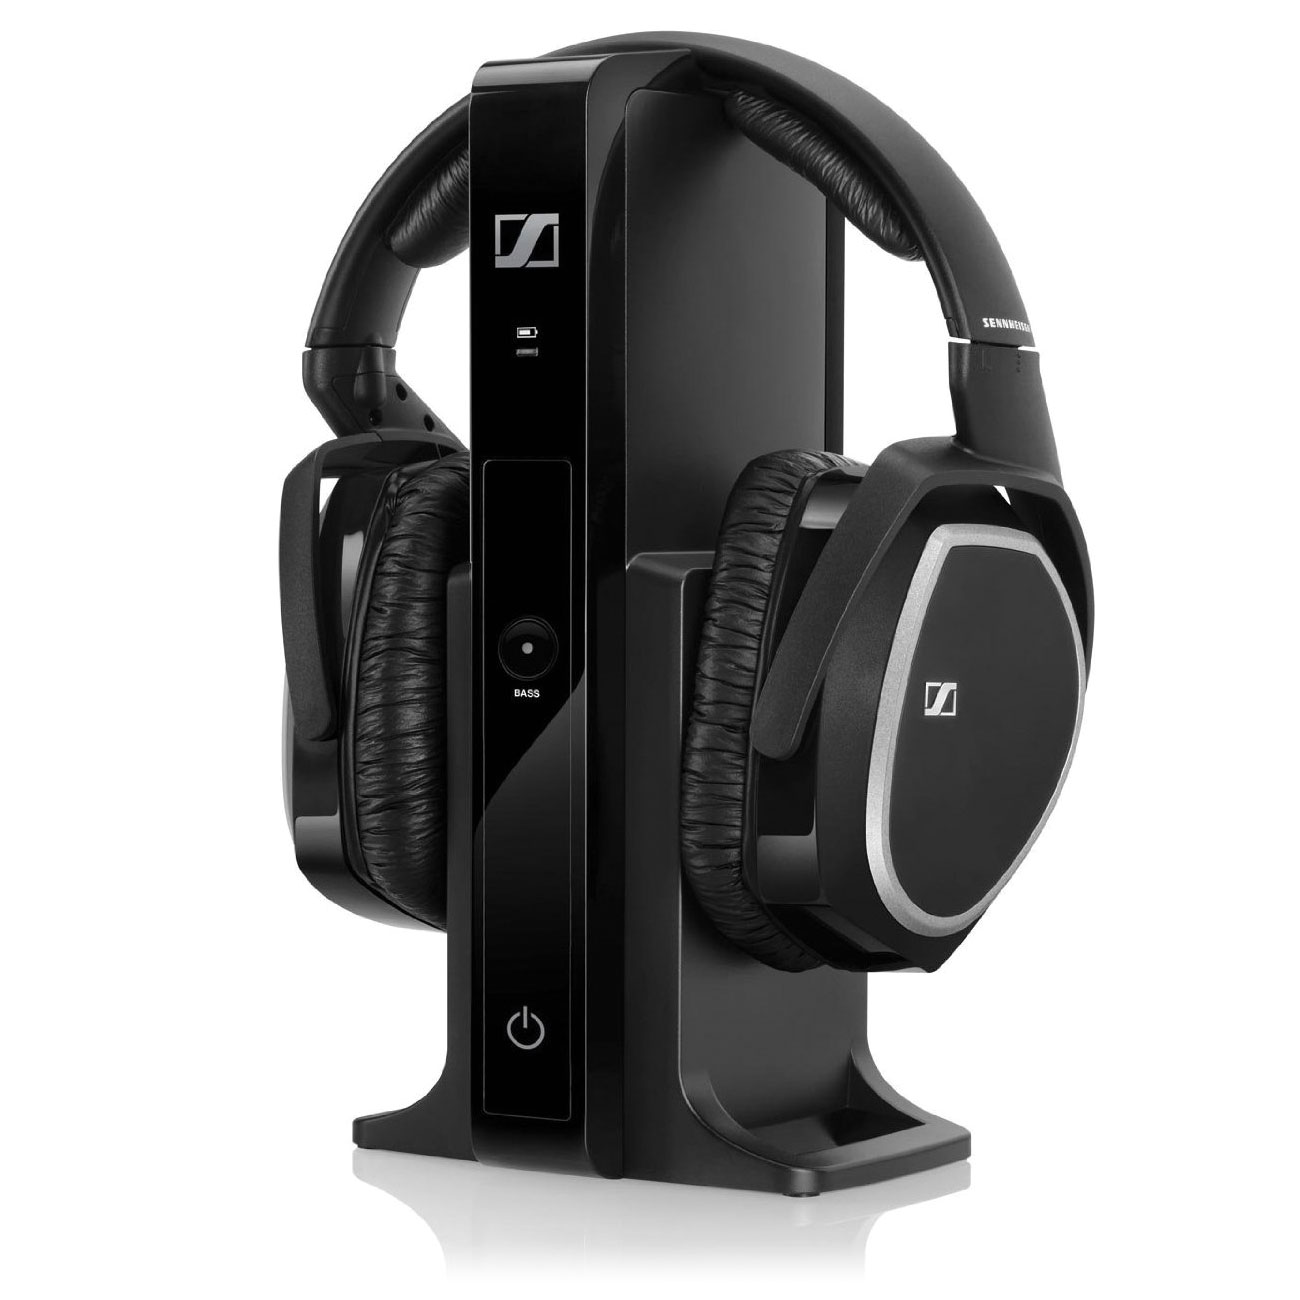 Sennheiser RS 165 TV Digital Wireless Headset Headphones